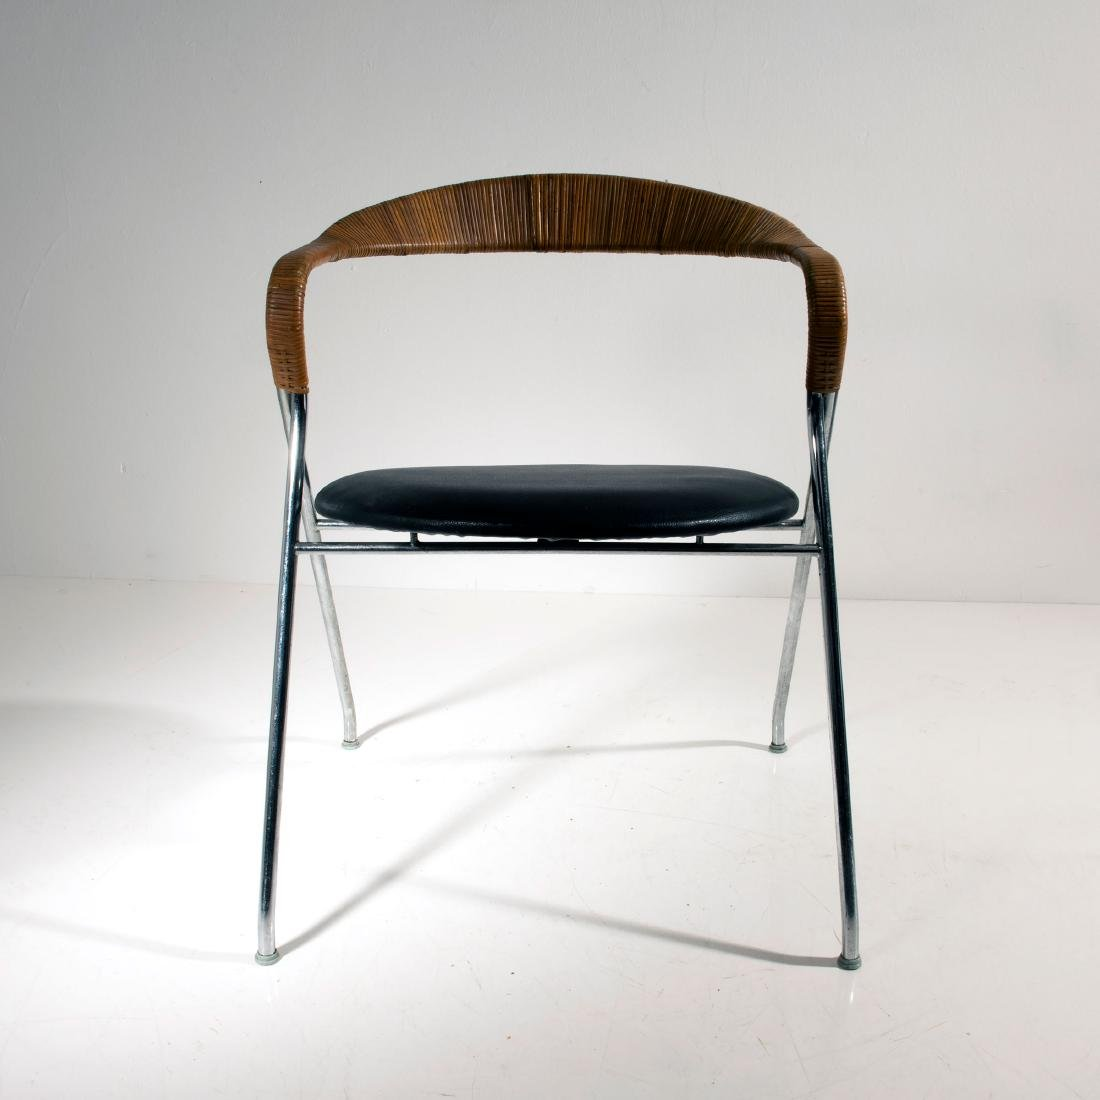 'Saffa' chair 'HE-103', 1955 - 3